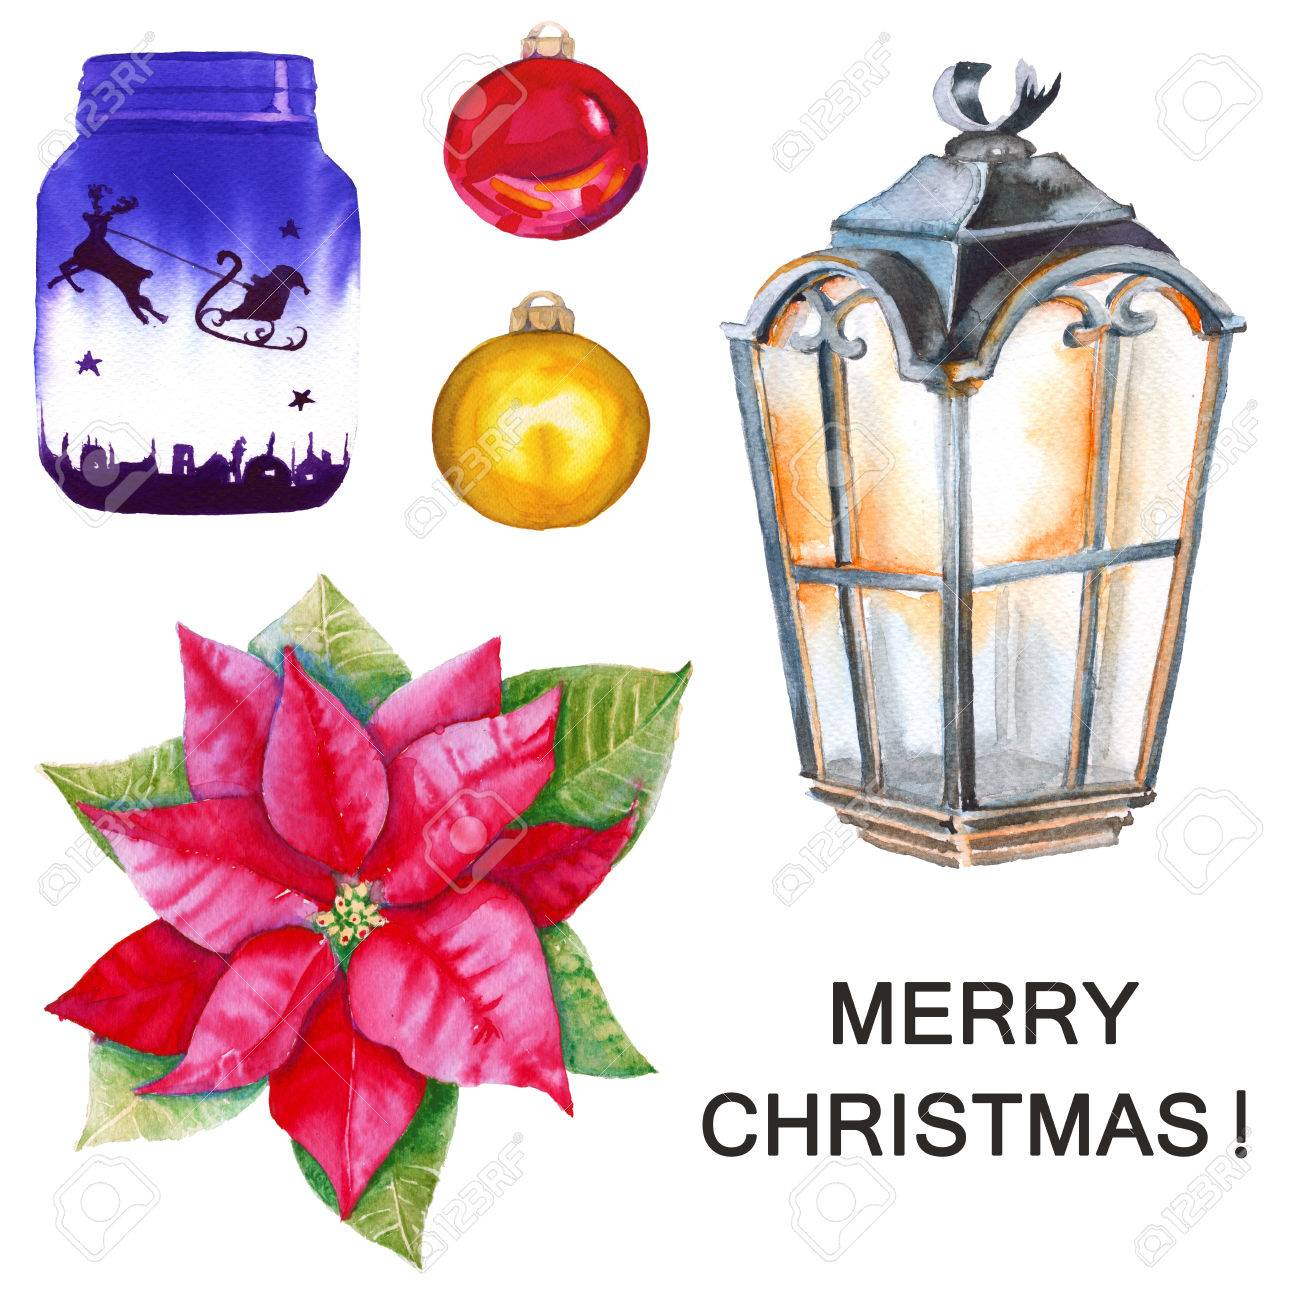 Poinsettia, gift Bank, lantern, Christmas balls. Isolated.